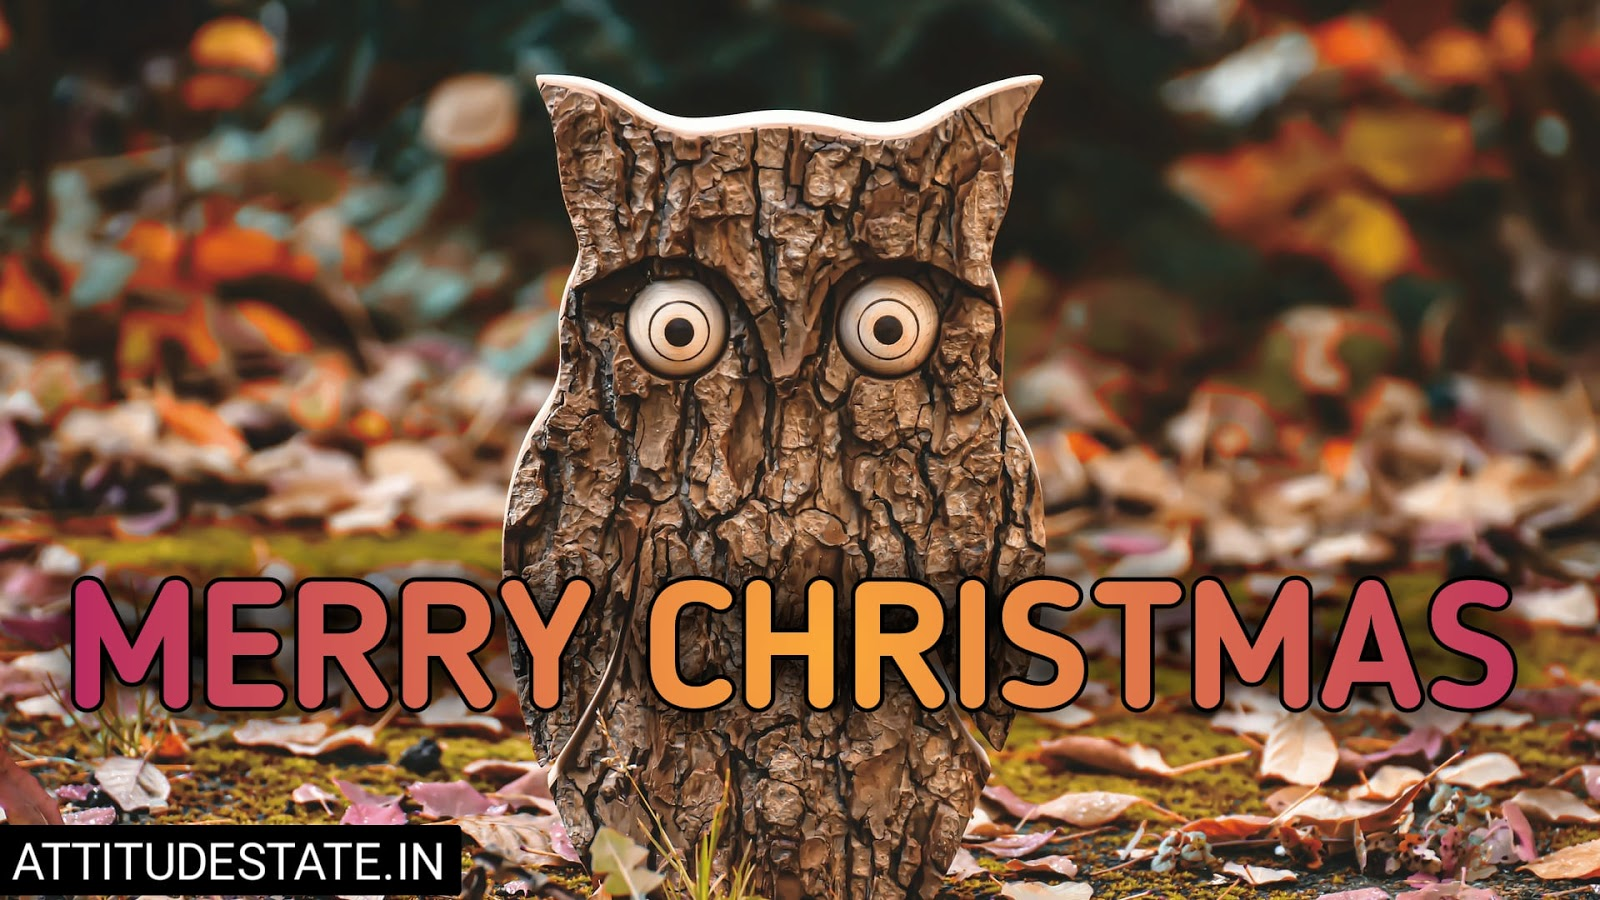 funny merry christmas images for facebook